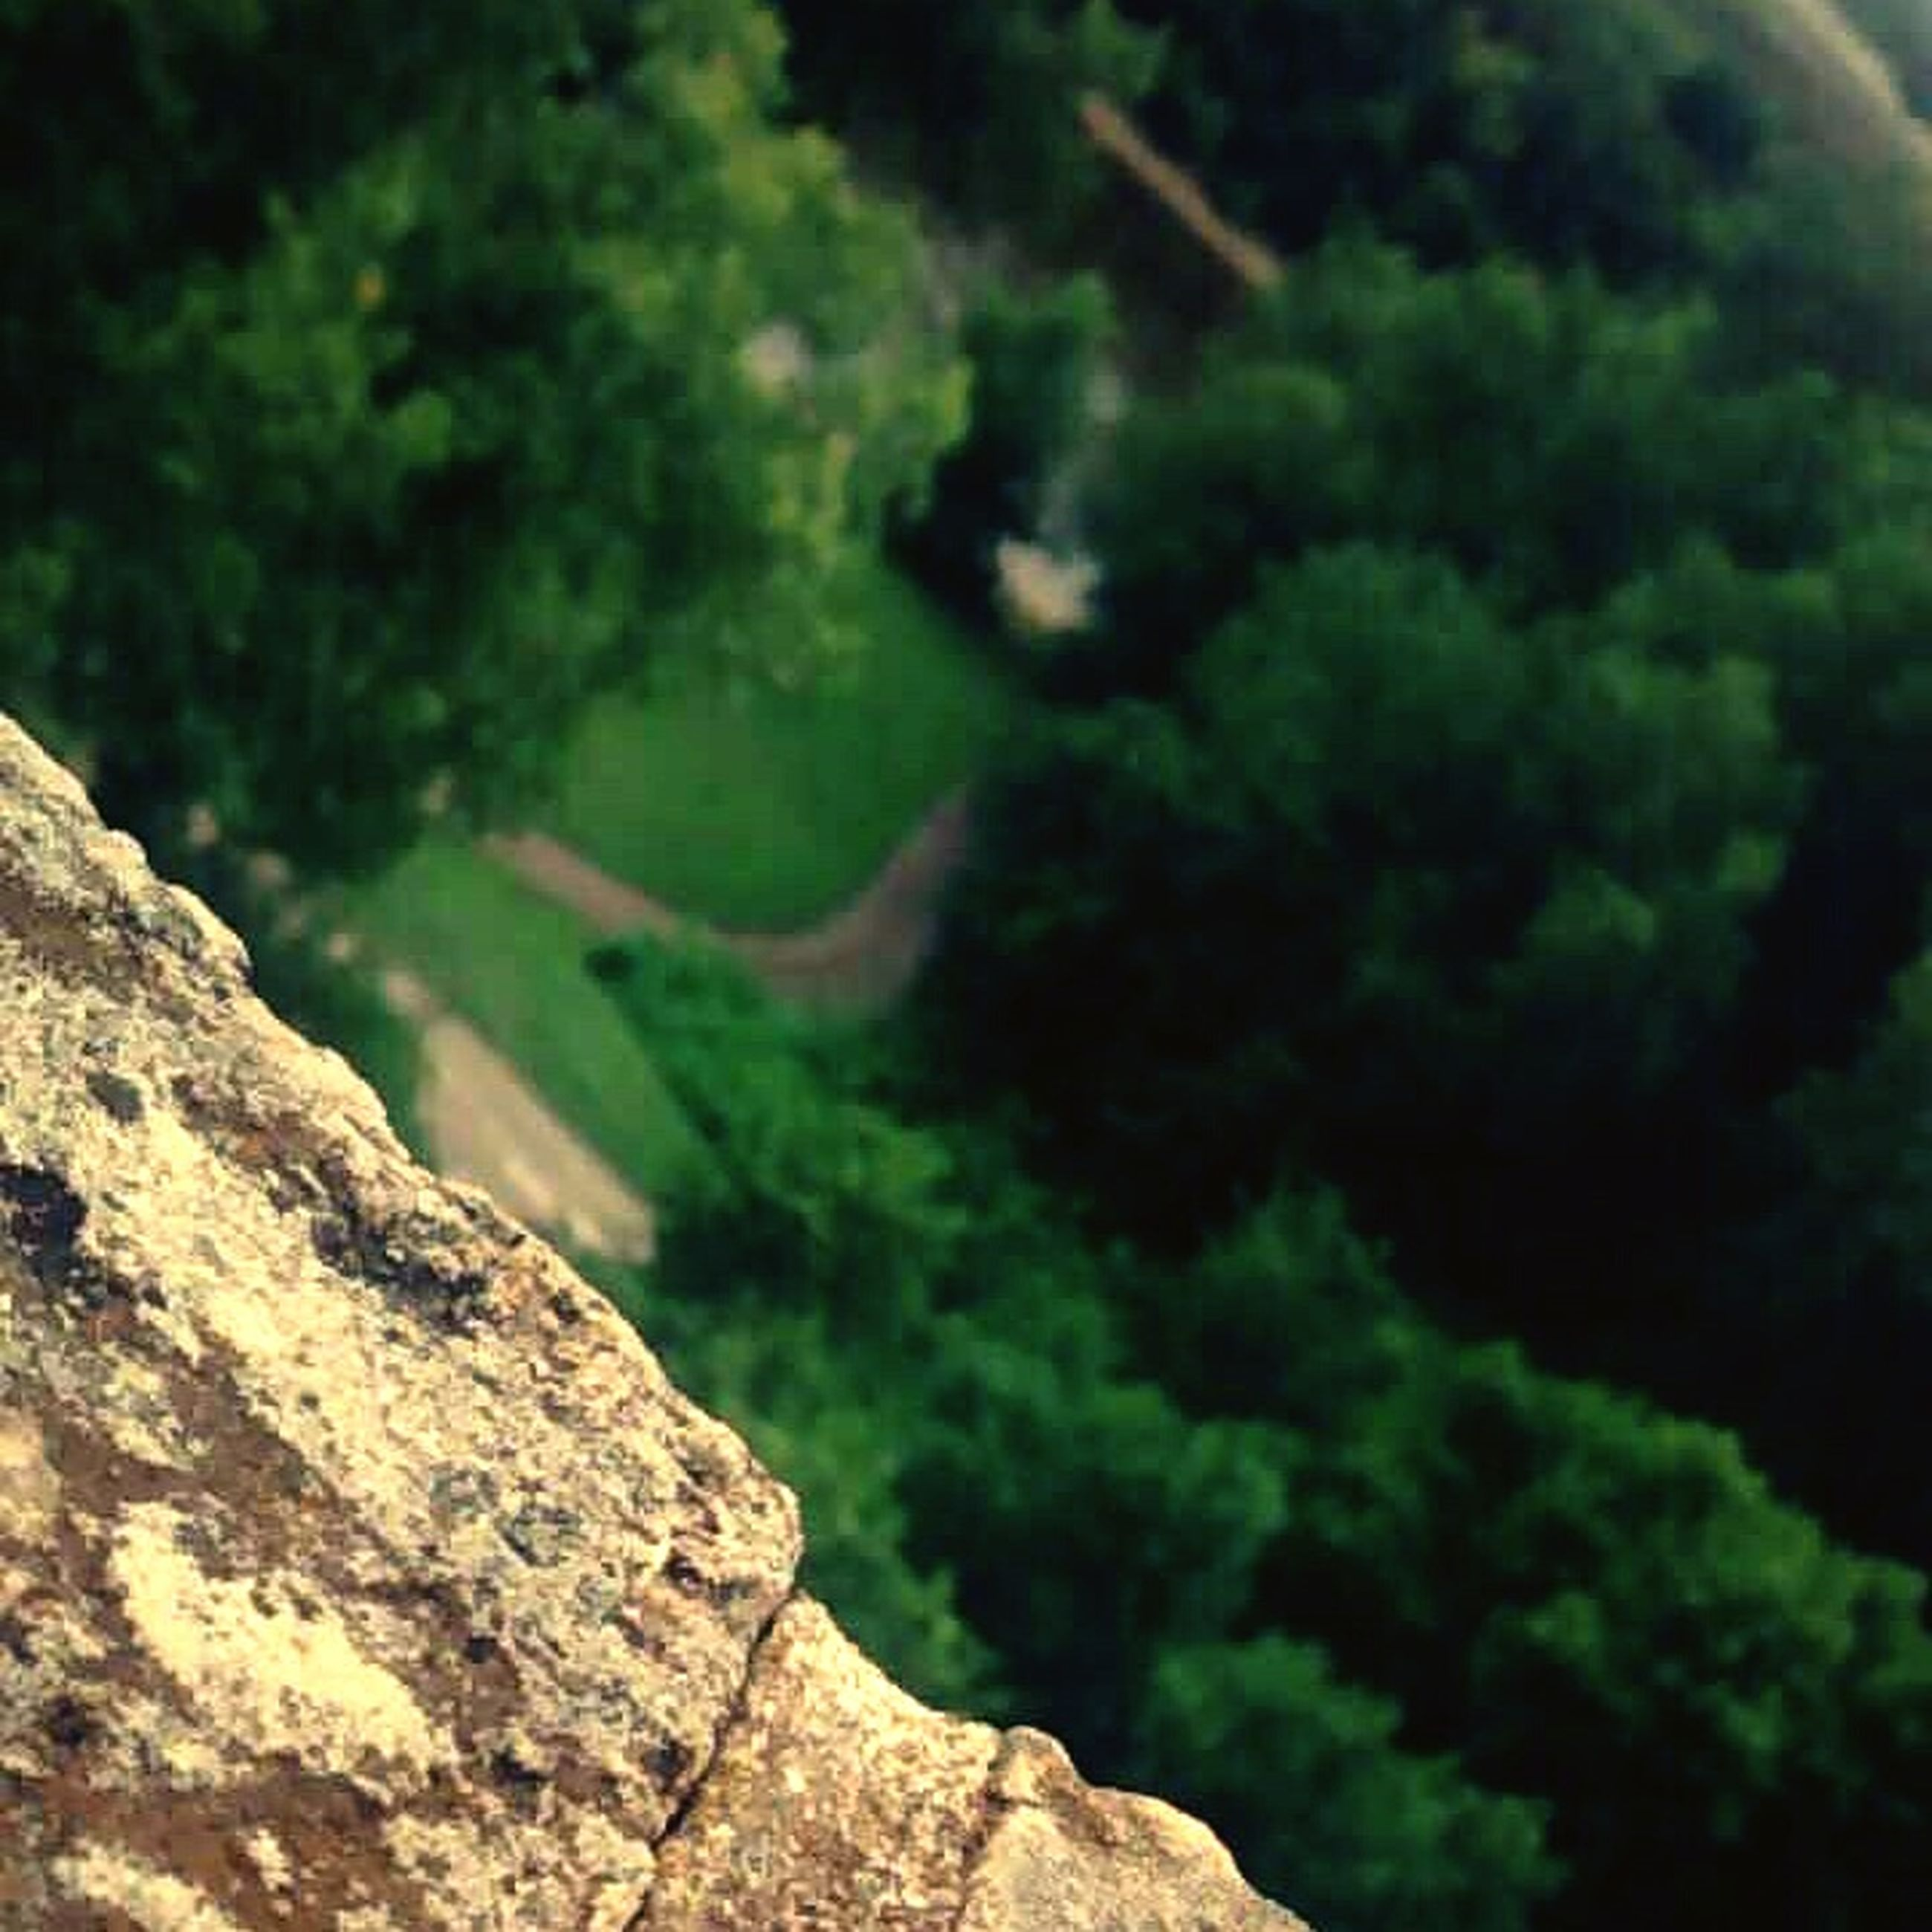 tree, forest, moss, green color, nature, growth, beauty in nature, tranquility, rock - object, close-up, focus on foreground, selective focus, scenics, plant, outdoors, day, tranquil scene, no people, rock, green